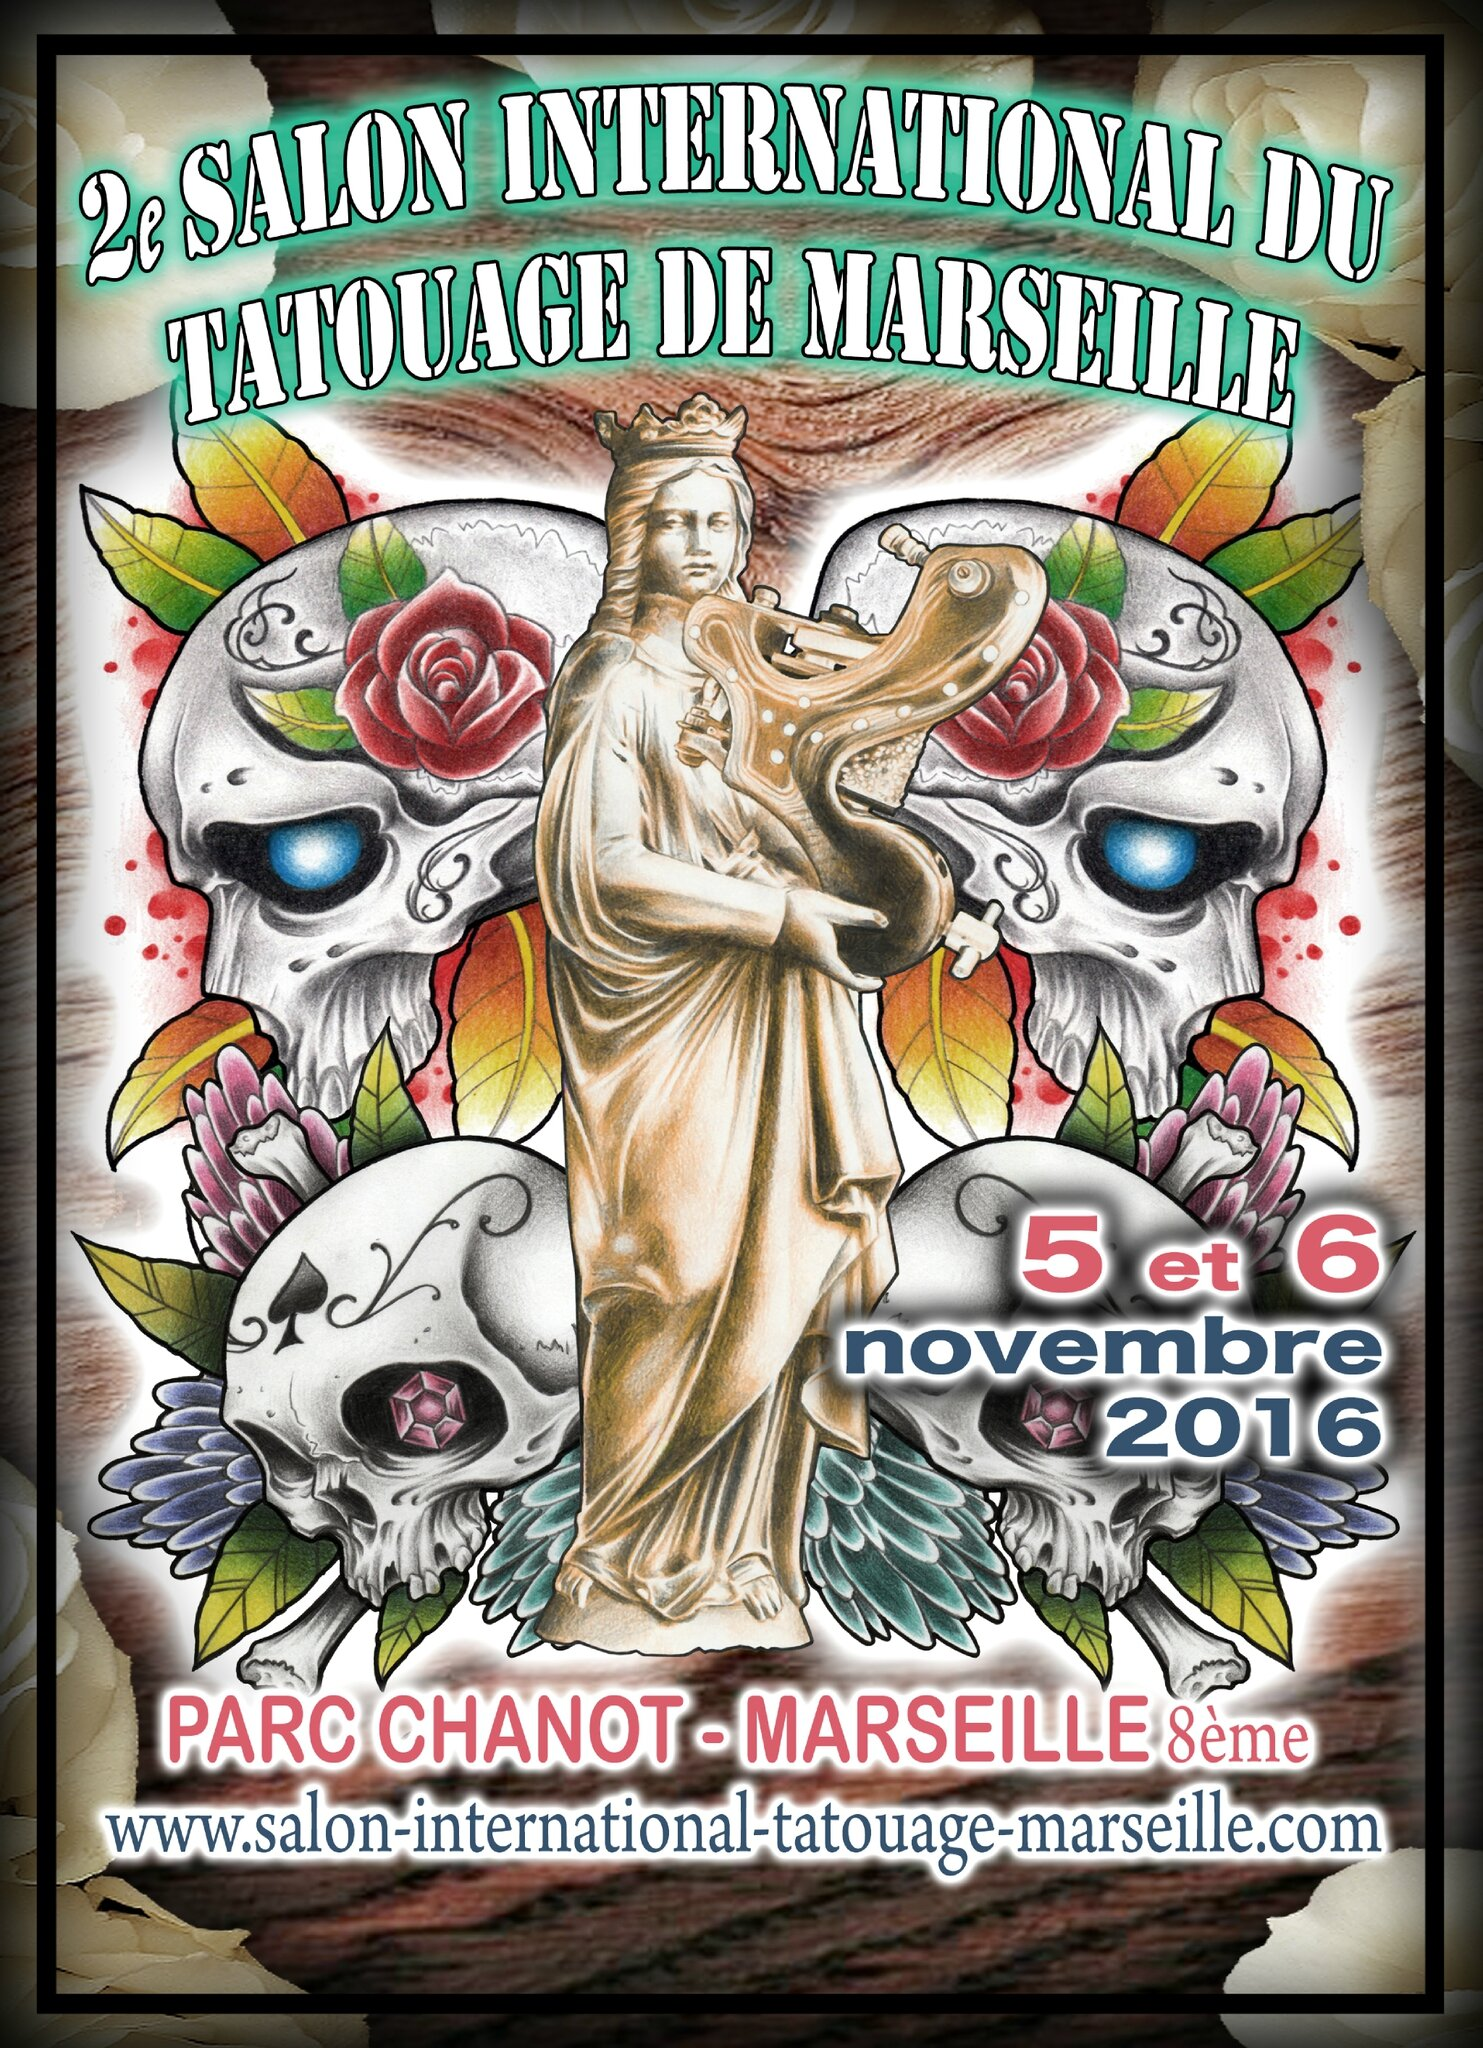 Salon international du tatouage 2016